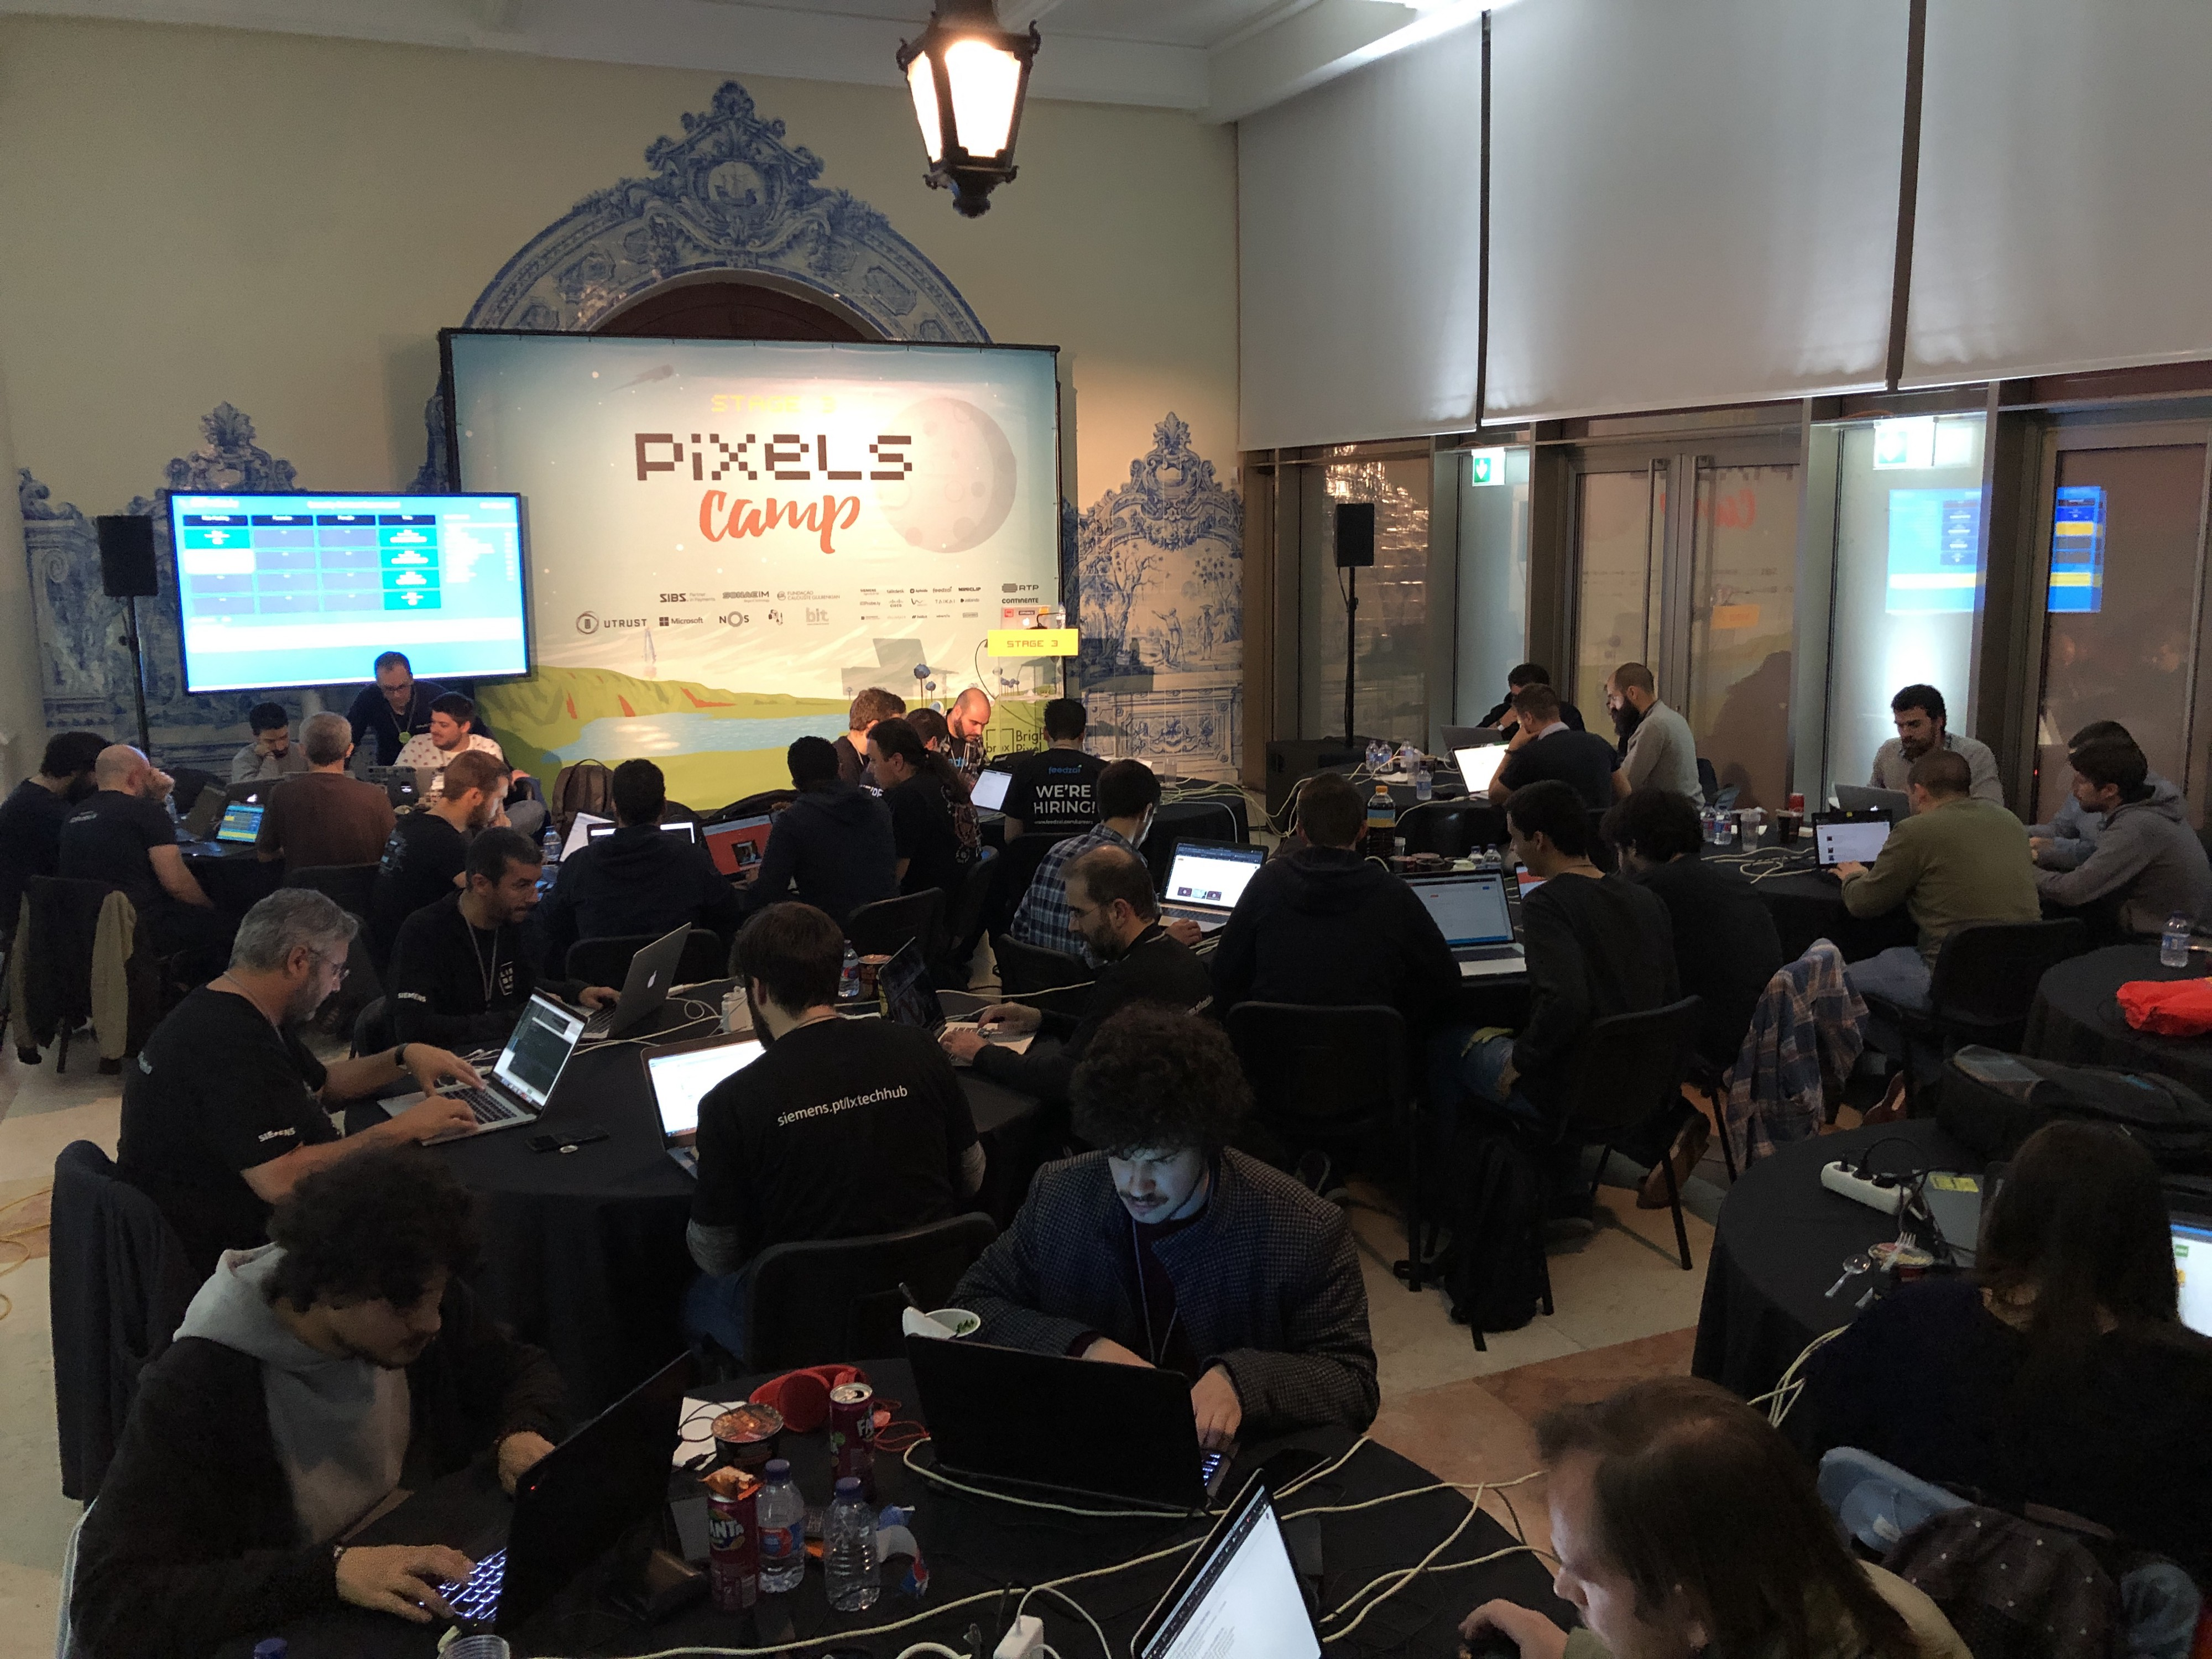 The 2019 Pixels Camp CTF chronicles - Probely